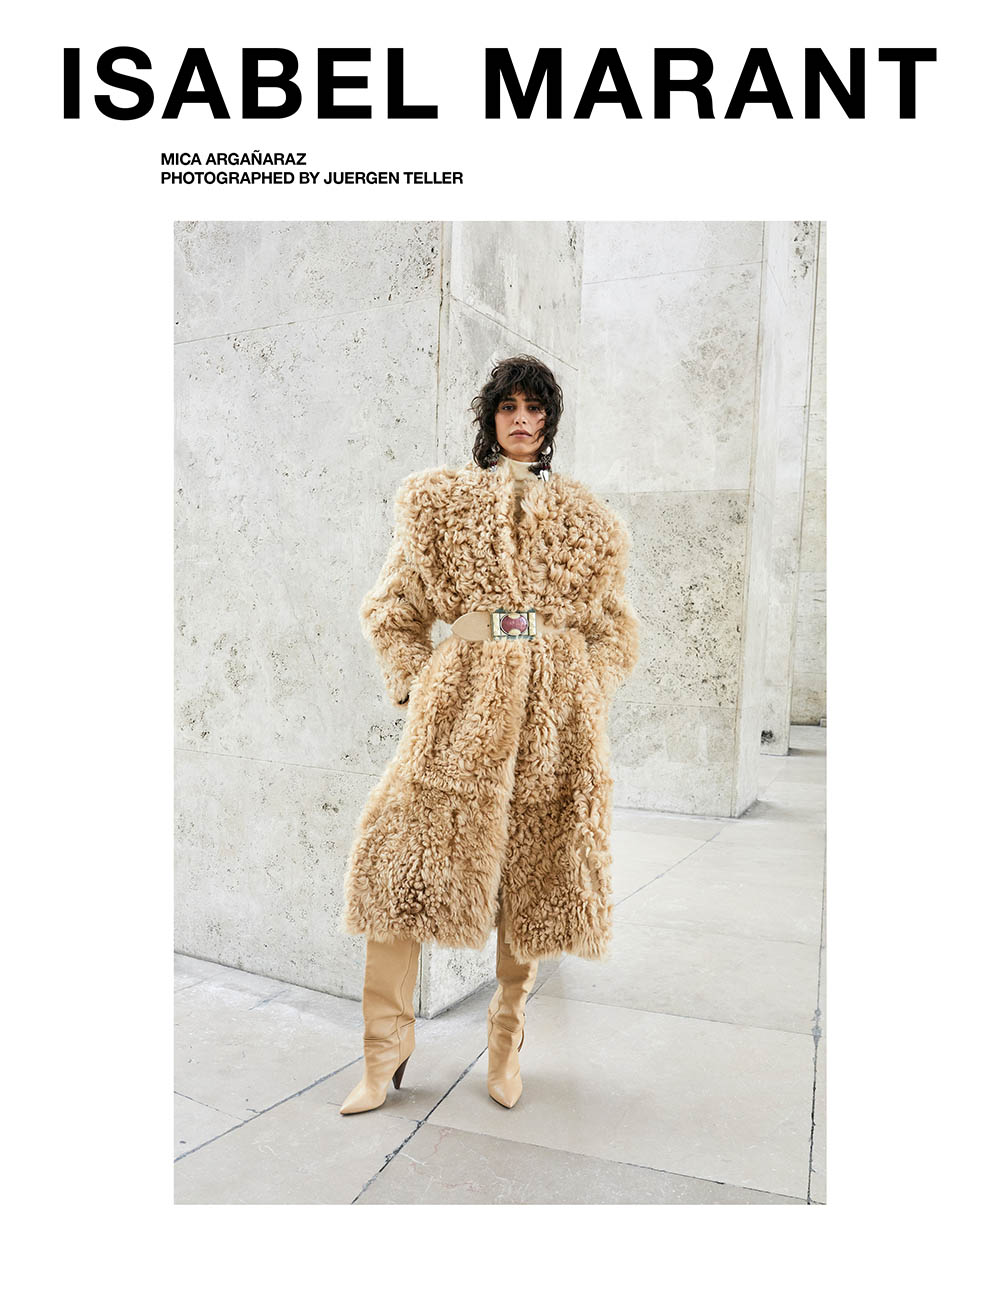 Isabel Marant Fall Winter 2020 CampaignIsabel Marant Fall Winter 2020 Campaign